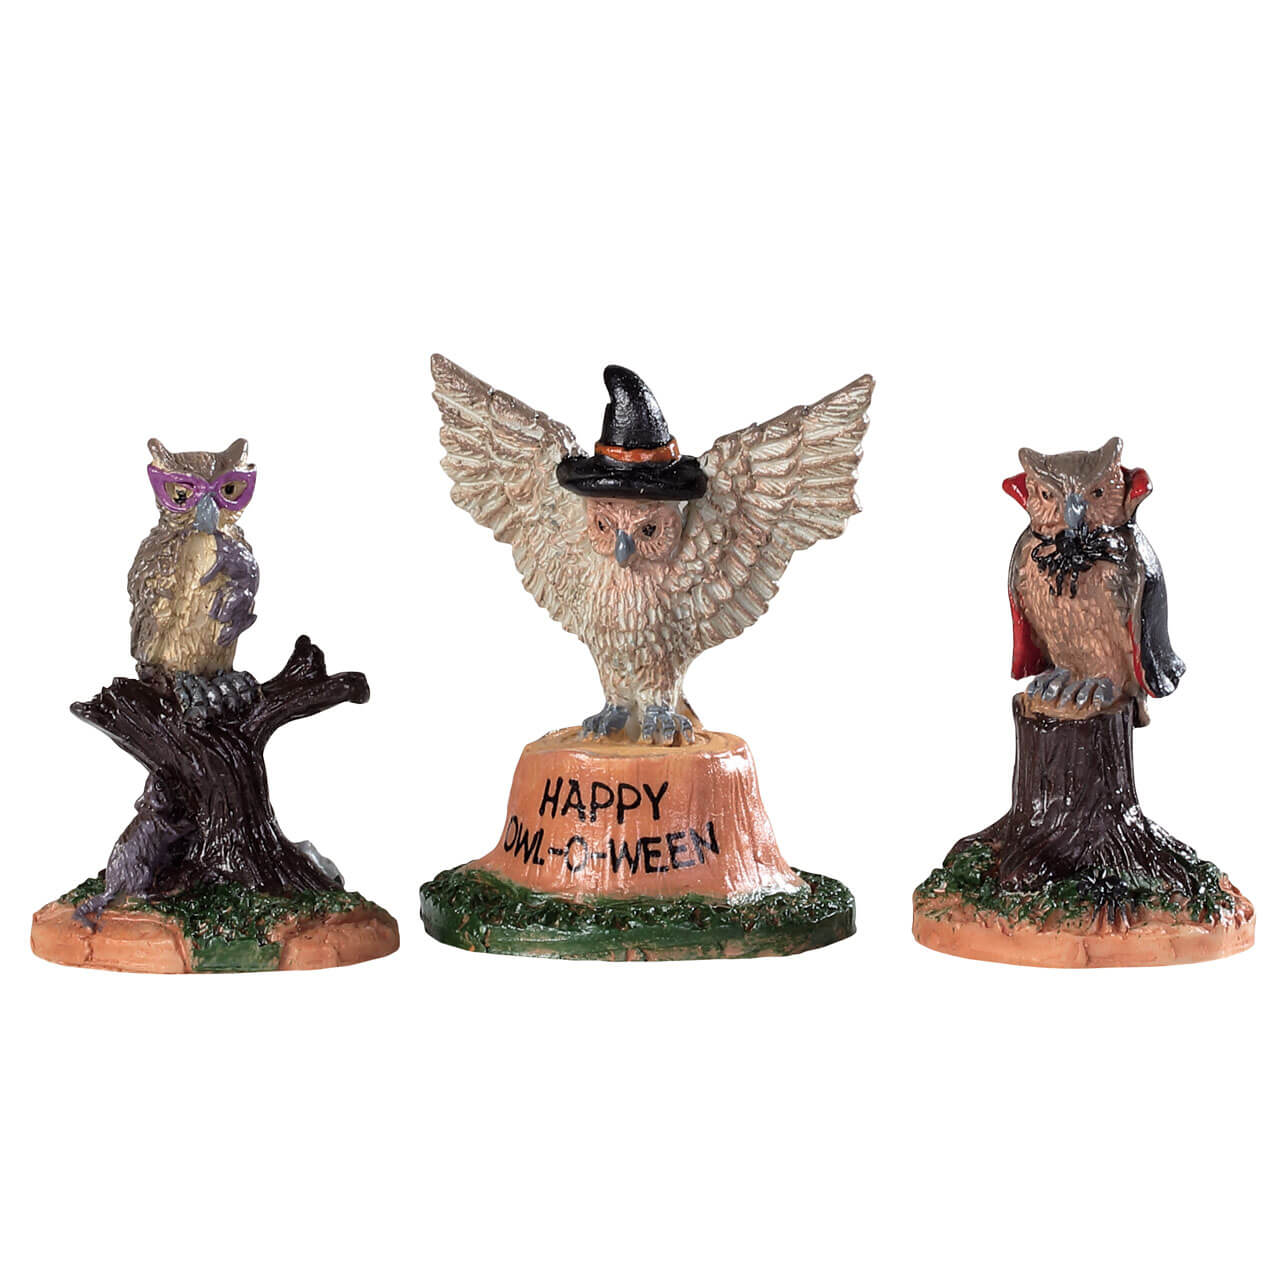 SPOOKY TOWN Halloween Decor Accessory Sign Vulture New I